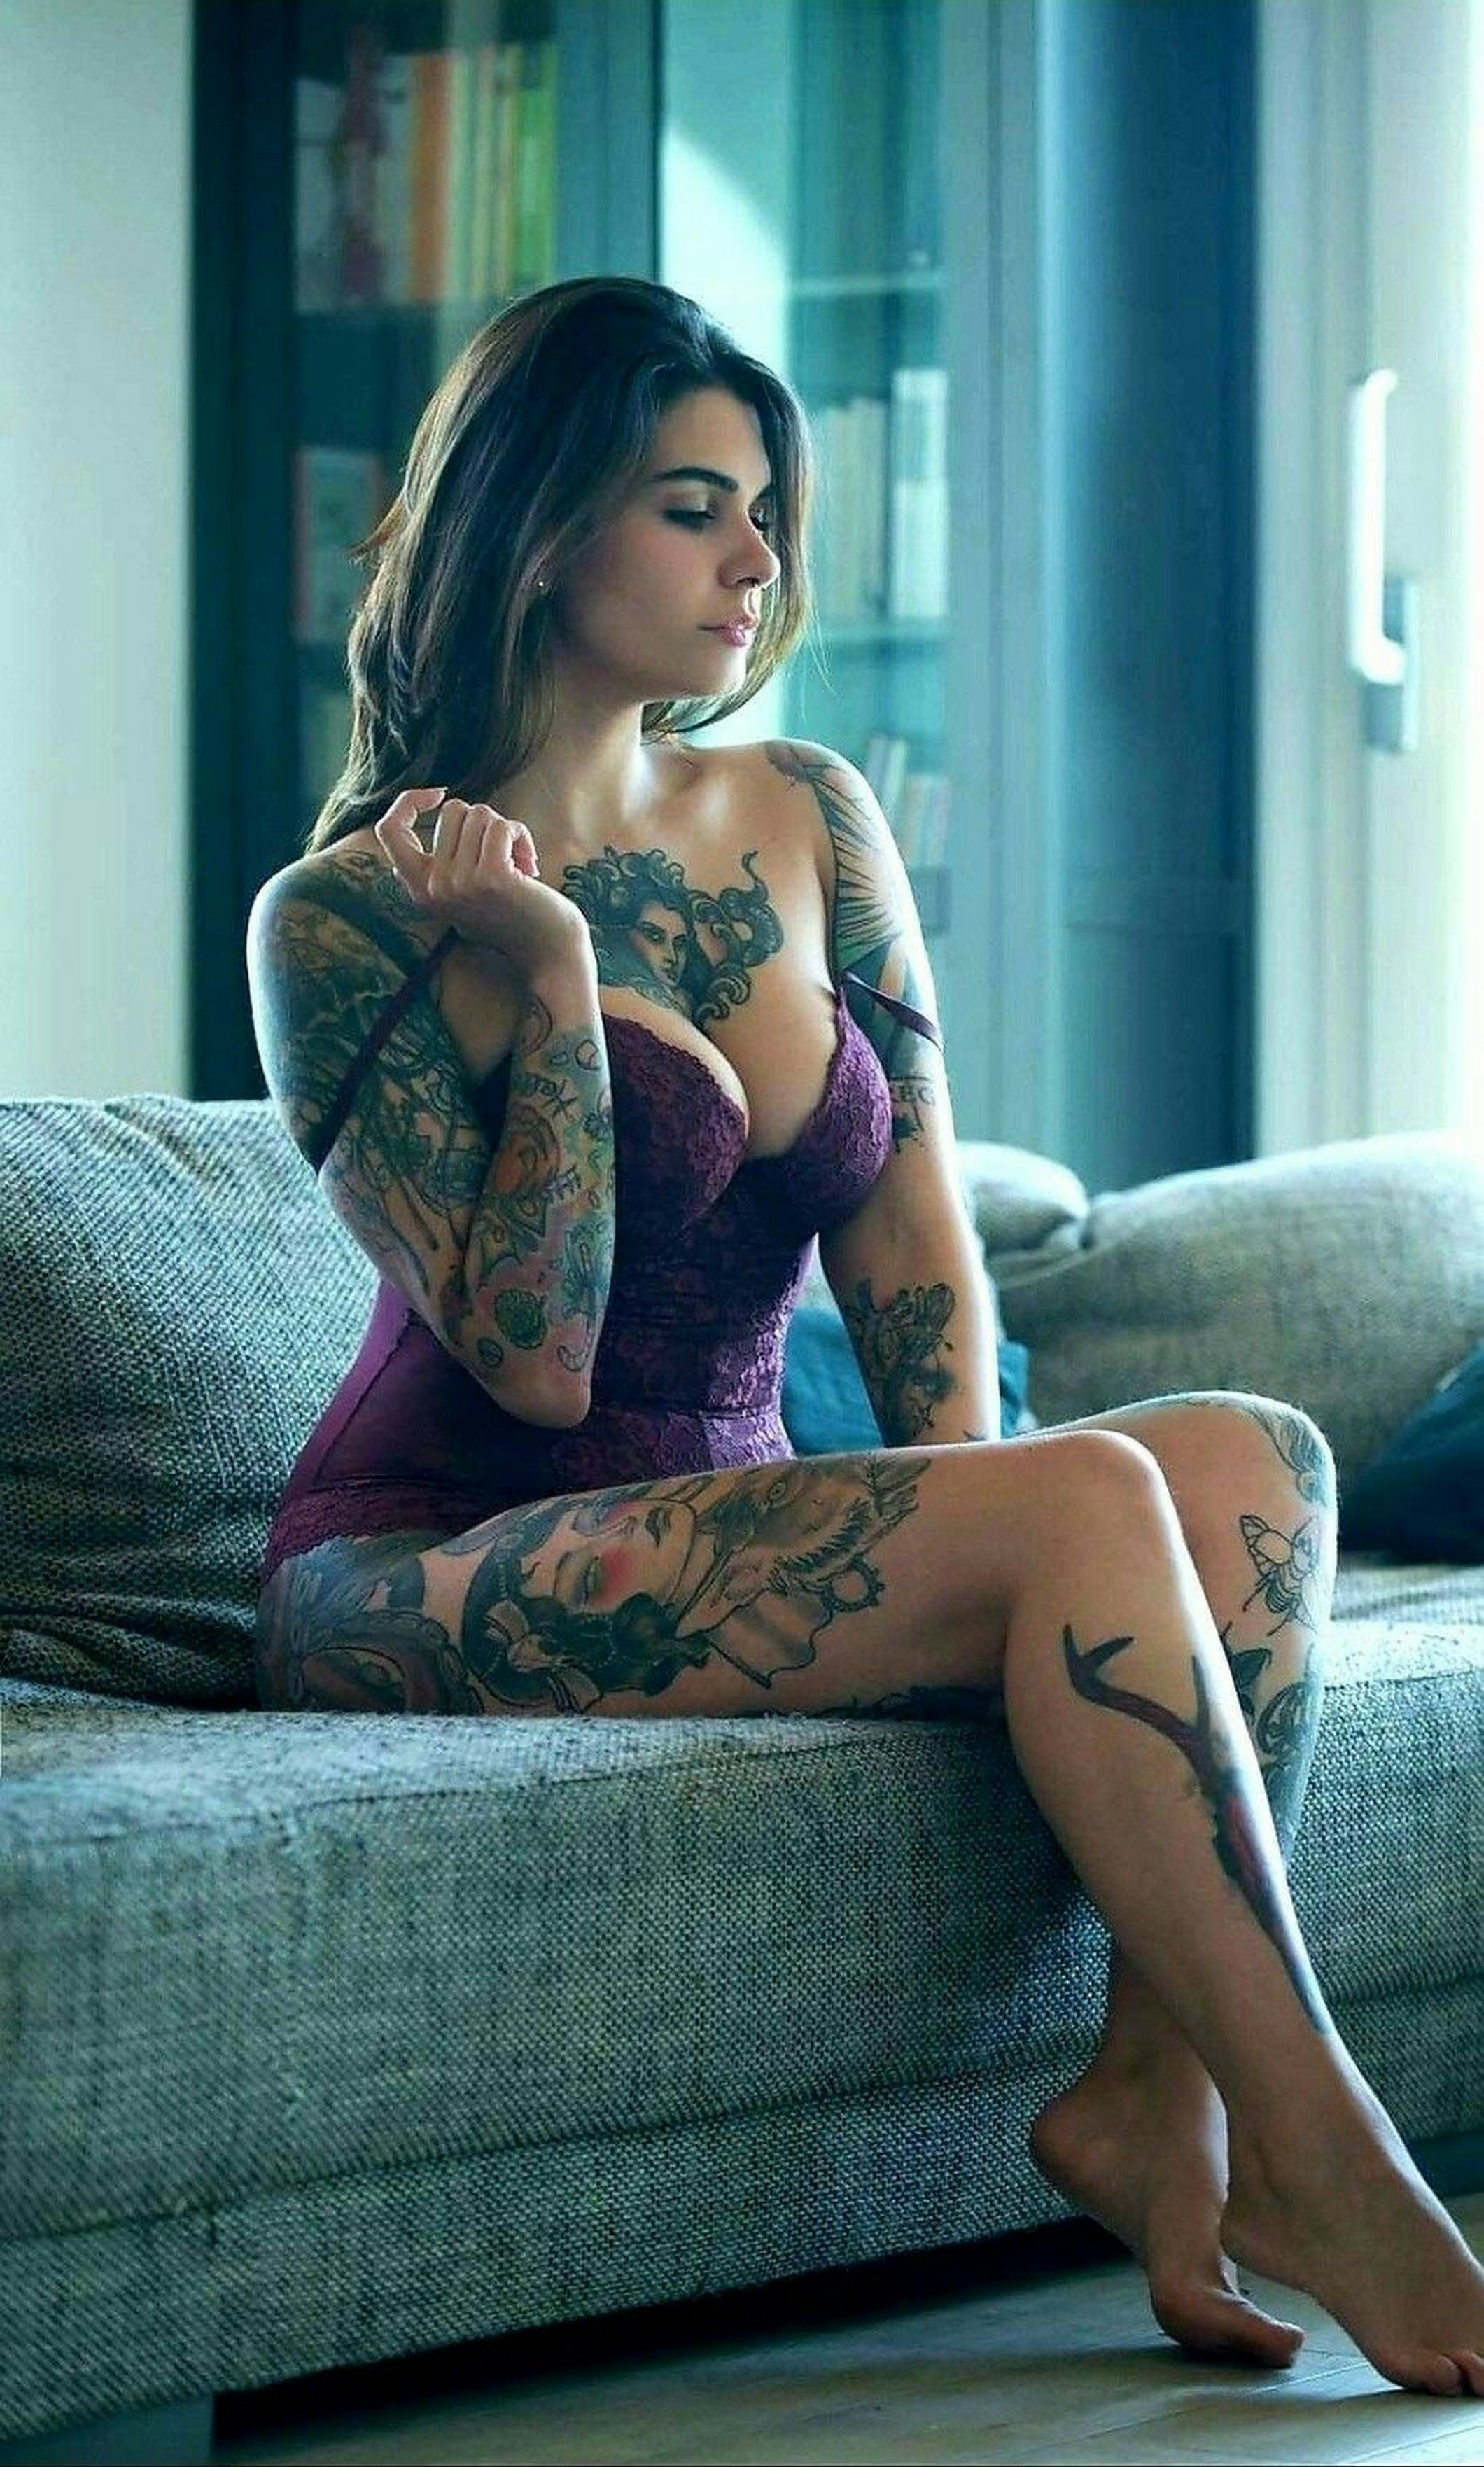 Something is. porn tattoo hot are